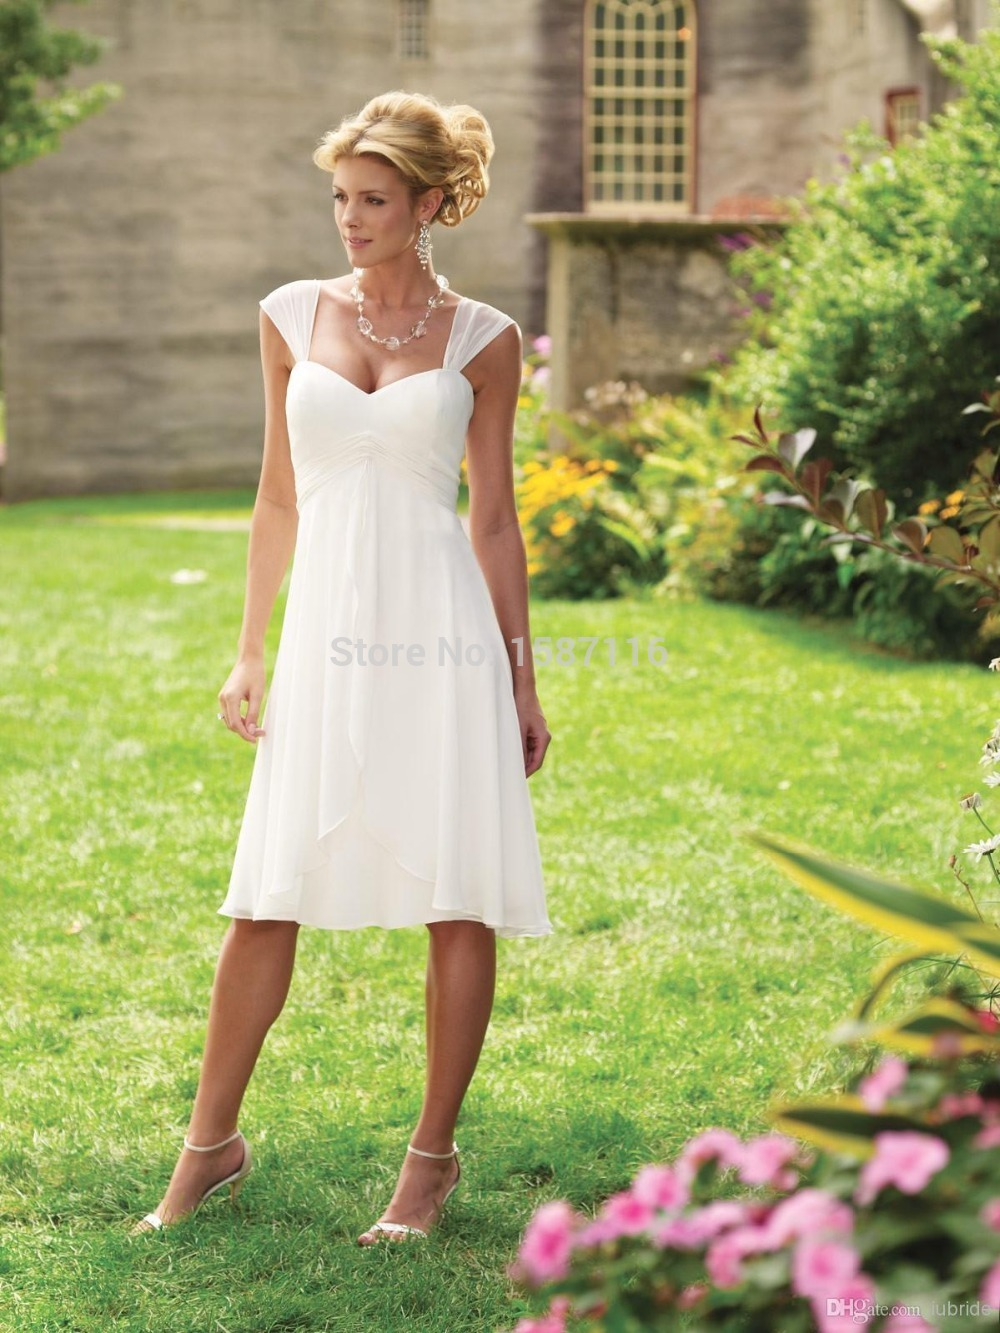 Simple Summer Beach Wedding Dresses White Sweetheart Cap Sleeves Short Cheap Bridal Dress Chiffon Knee Length A Line Gowns 2015 In From